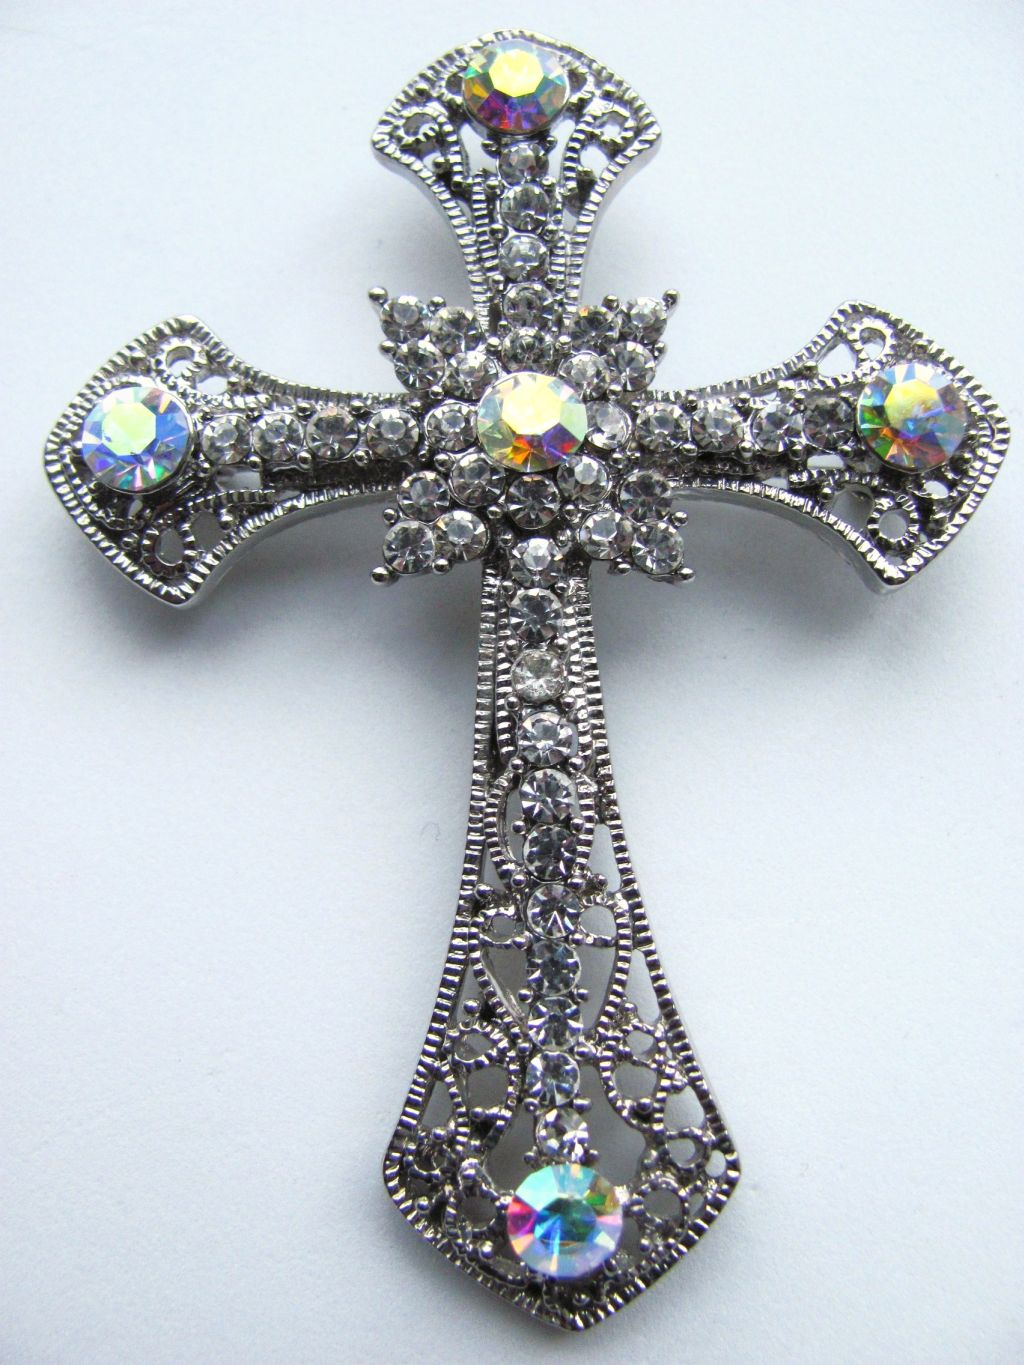 2 34 clear diamond large cross pendant pin brooch genuine cz stones mailing list aloadofball Gallery